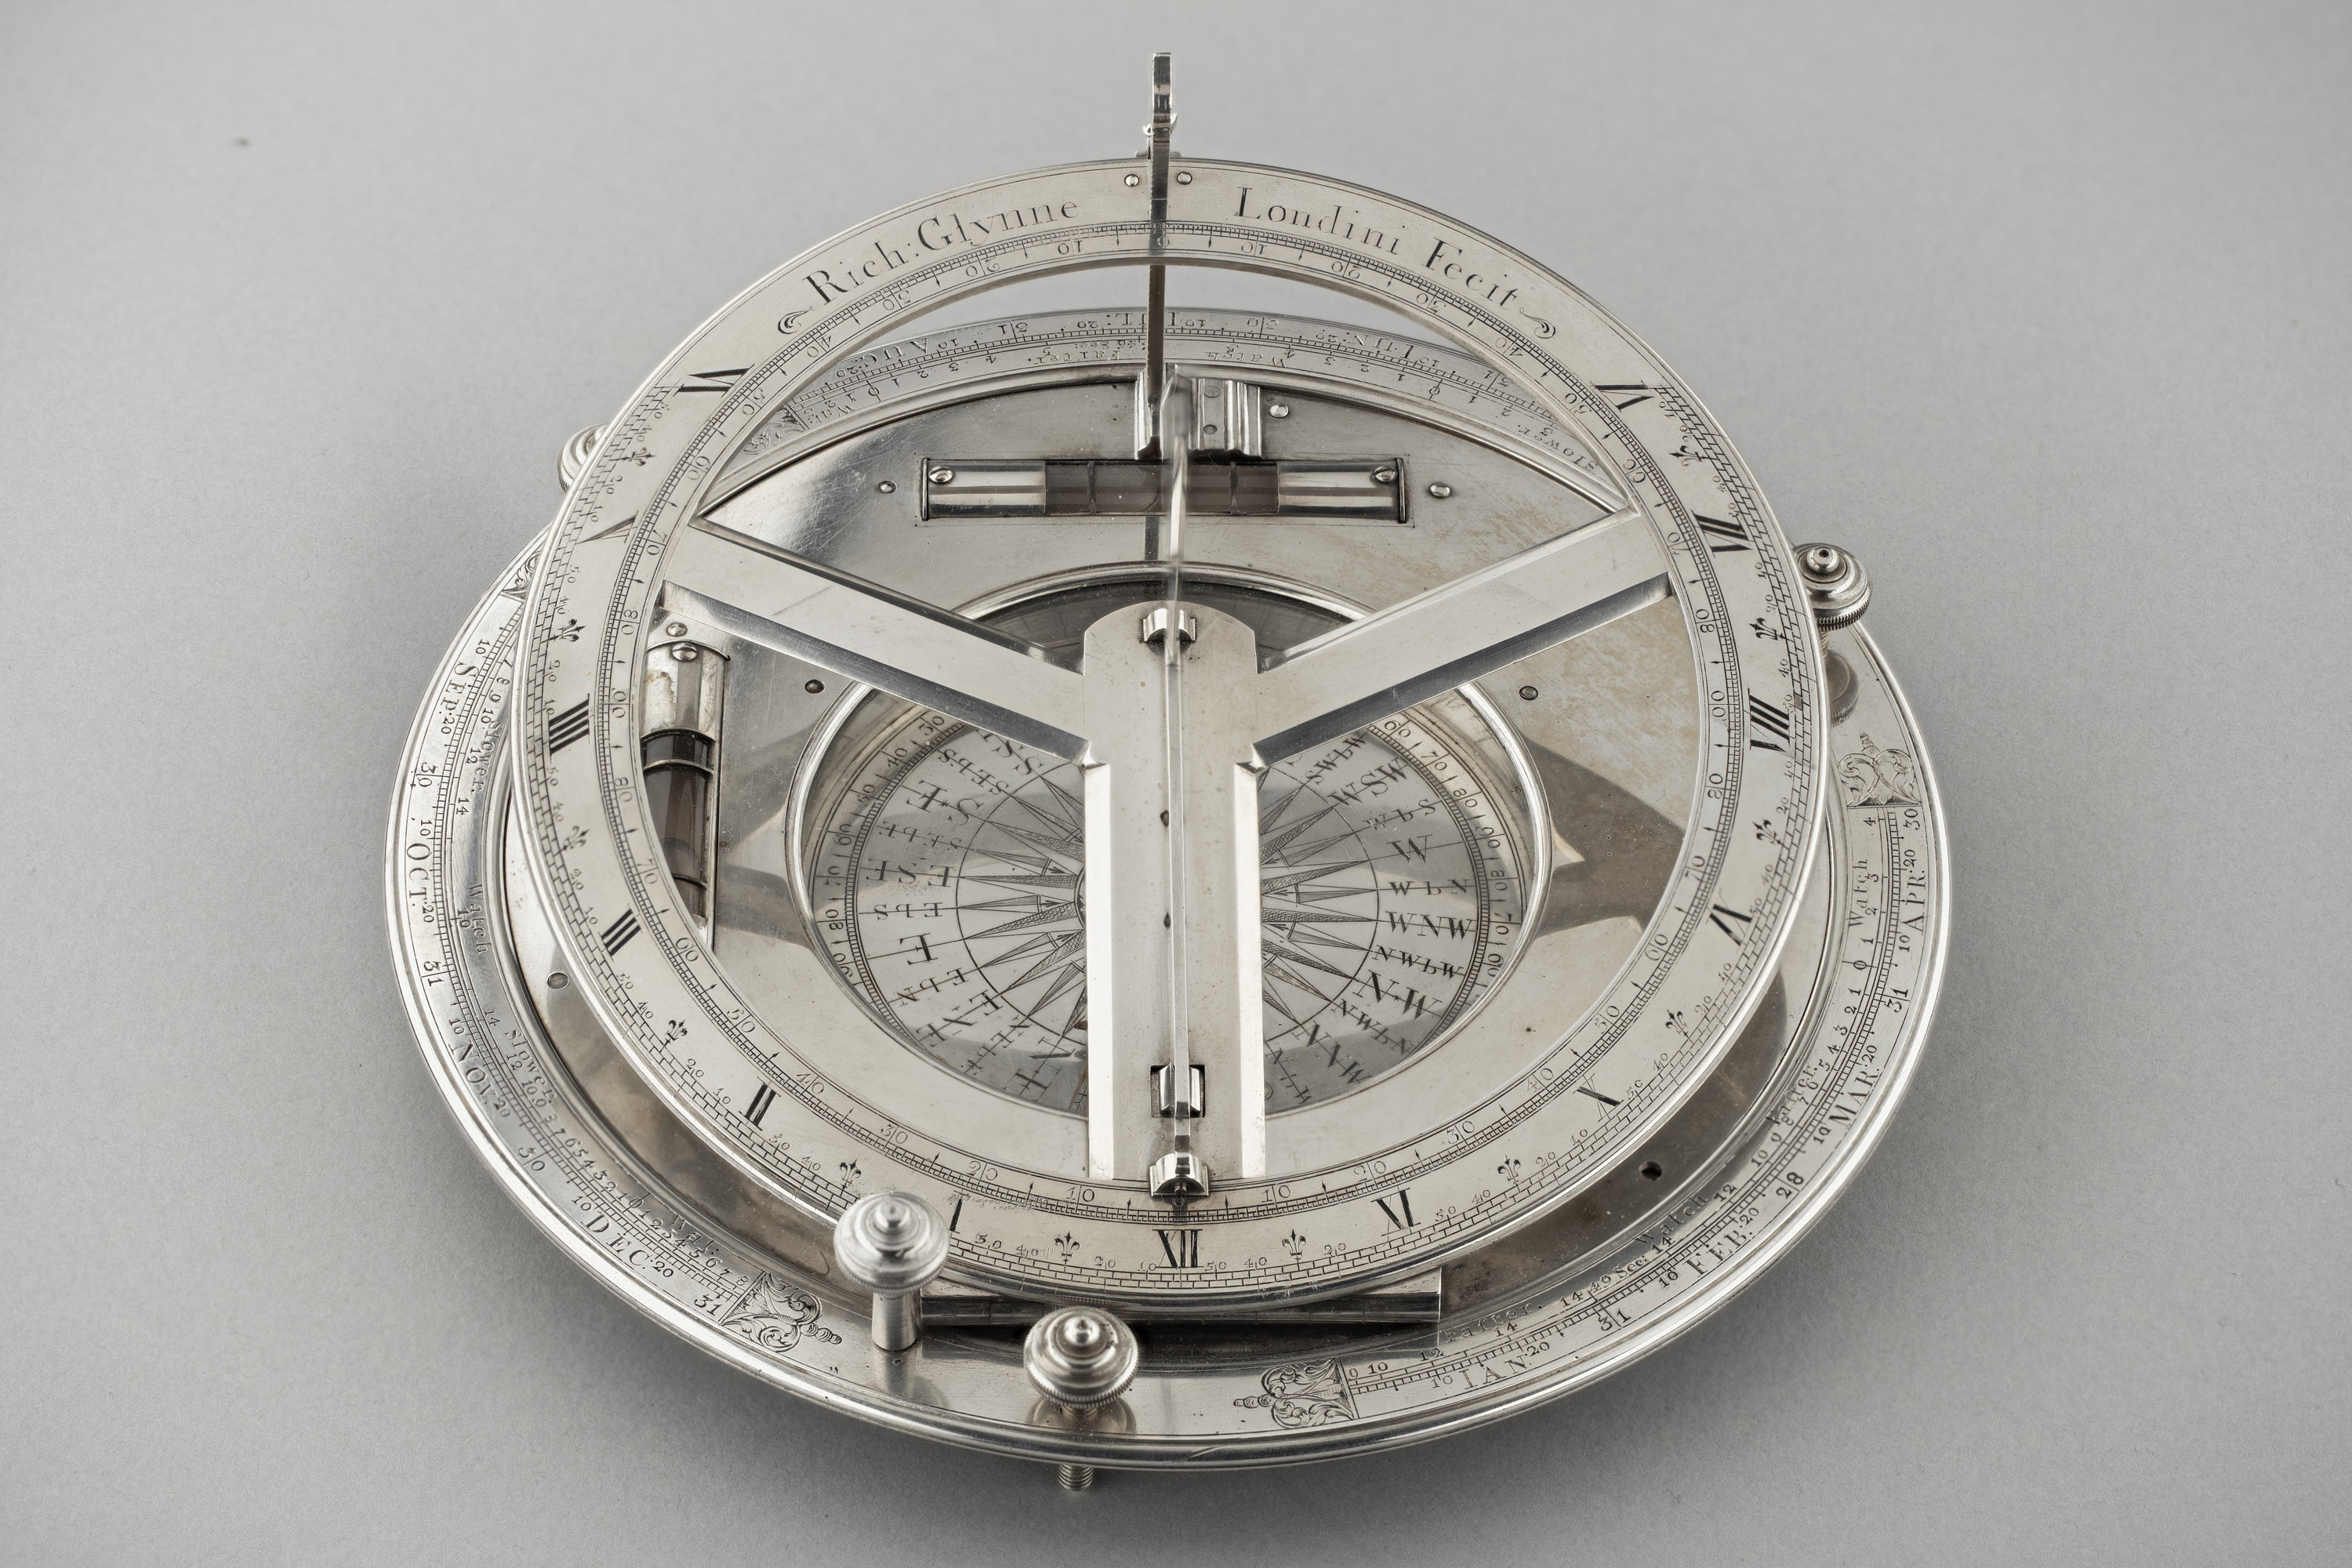 Richard Glynne, London, Inclining Dial, 1706 – 1743. Photographs by kind permission of Dr. John C. Taylor OBE